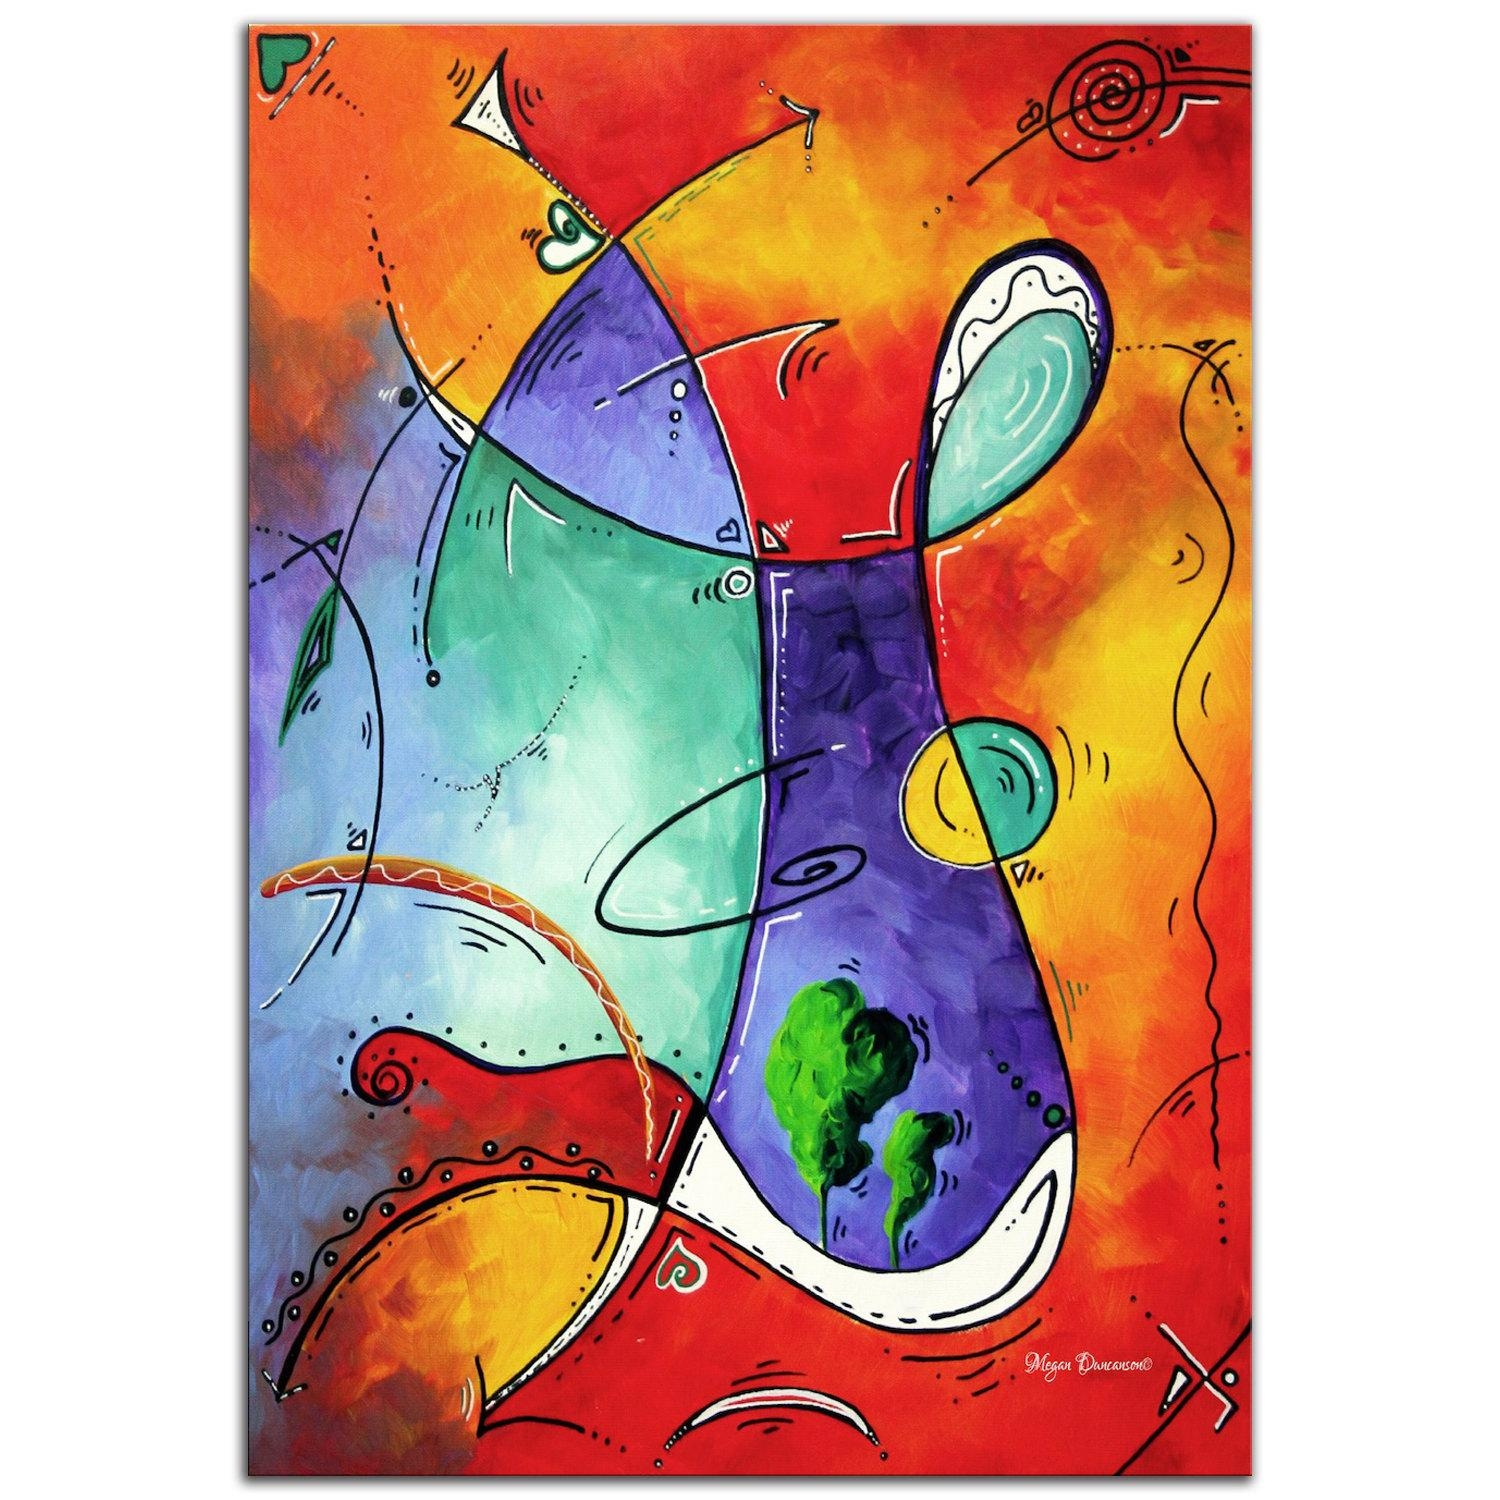 Colorful Abstract Painting 'free At Last' Modern Wall Intended For Megan Duncanson Metal Wall Art (Image 4 of 20)